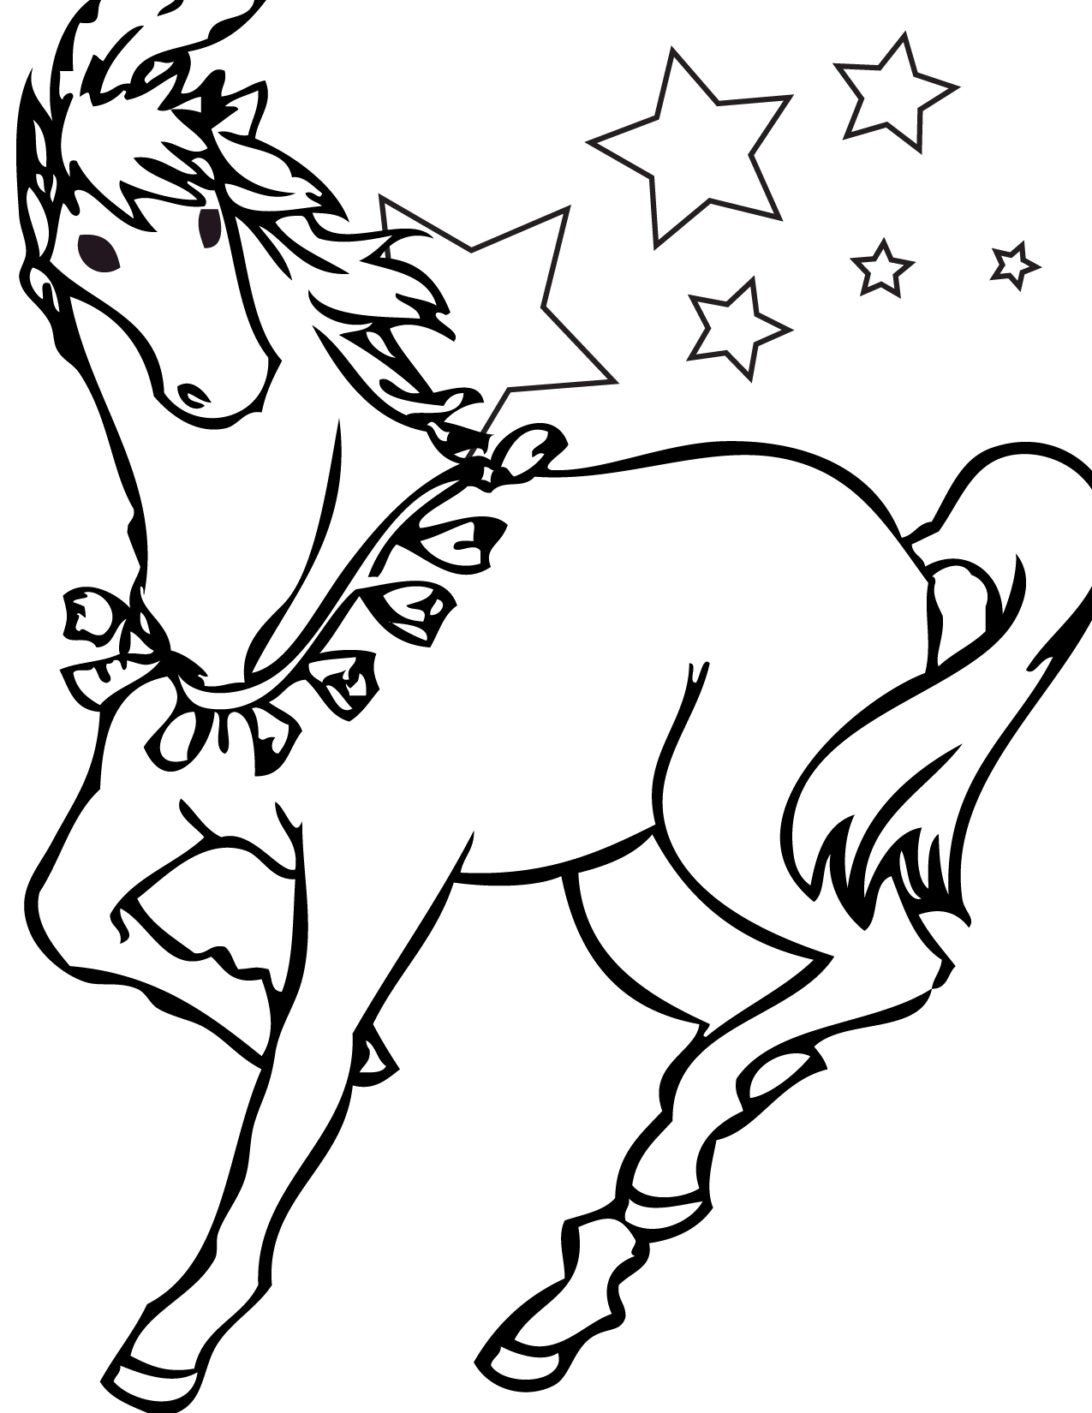 Coloring Pages For Kids Horses Coloring Pages Coloring Free Printable Horse For Kids In 2020 Horse Coloring Pages Horse Coloring Books Summer Coloring Pages [ 1413 x 1092 Pixel ]